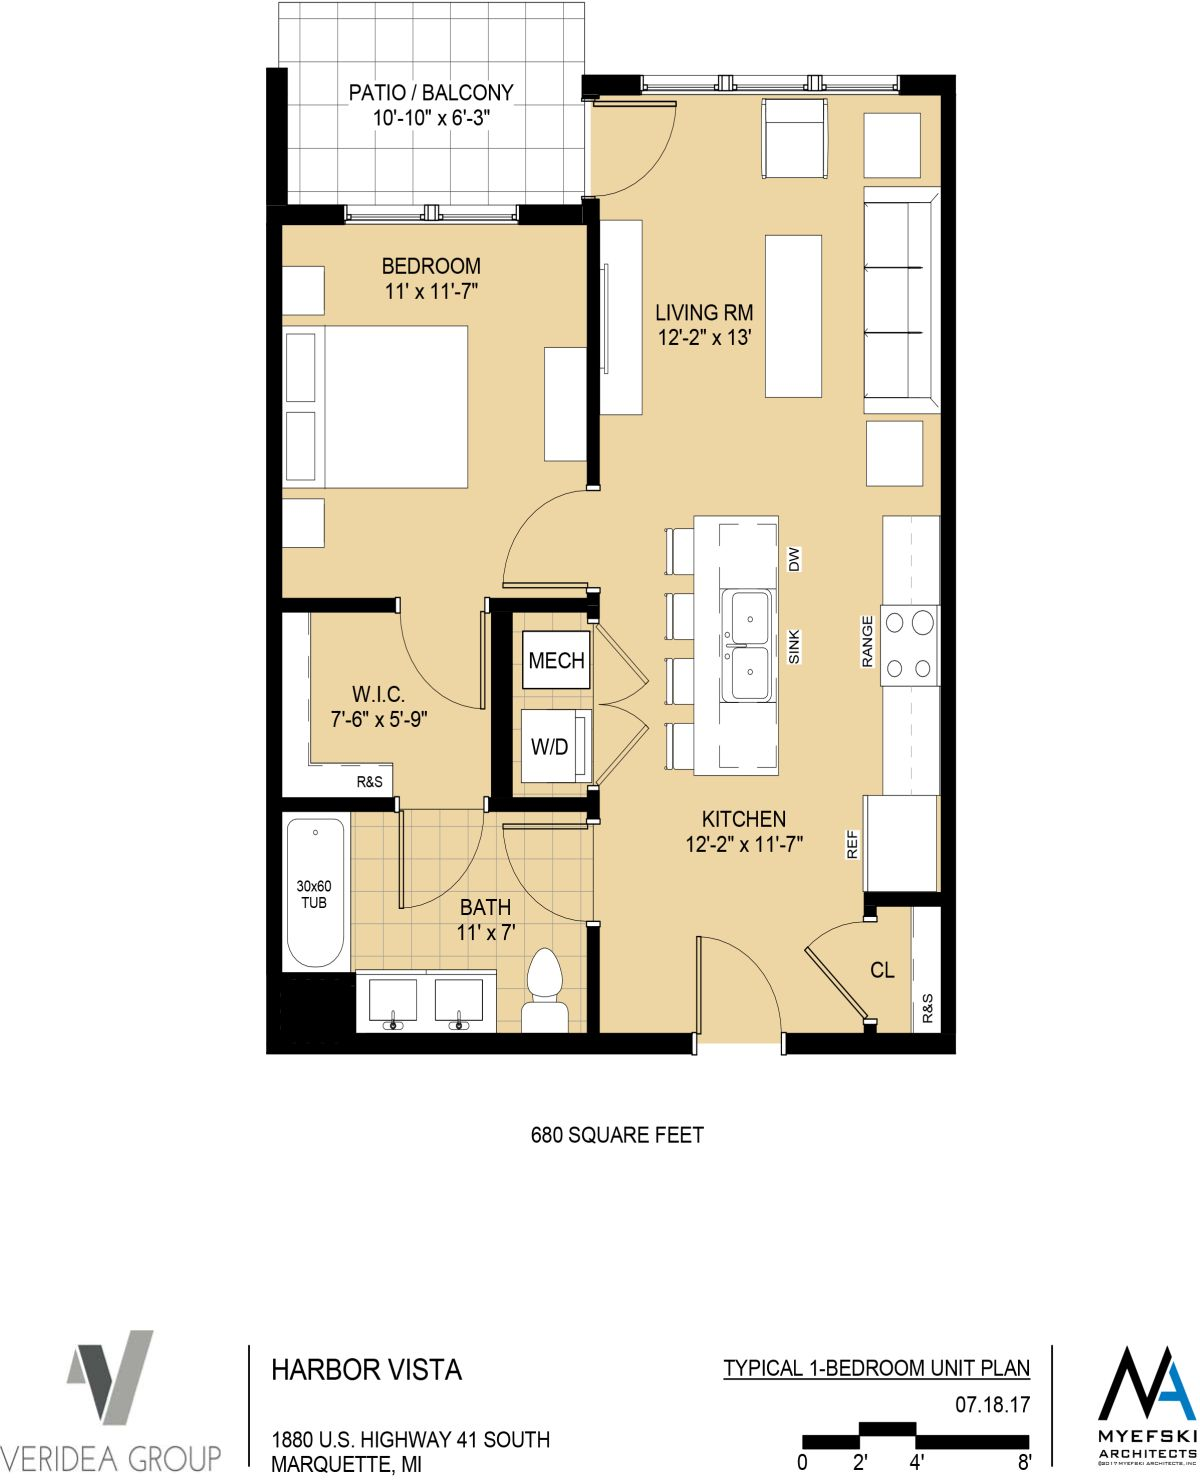 Standard 1 Bedroom Unit - 680 sq ft